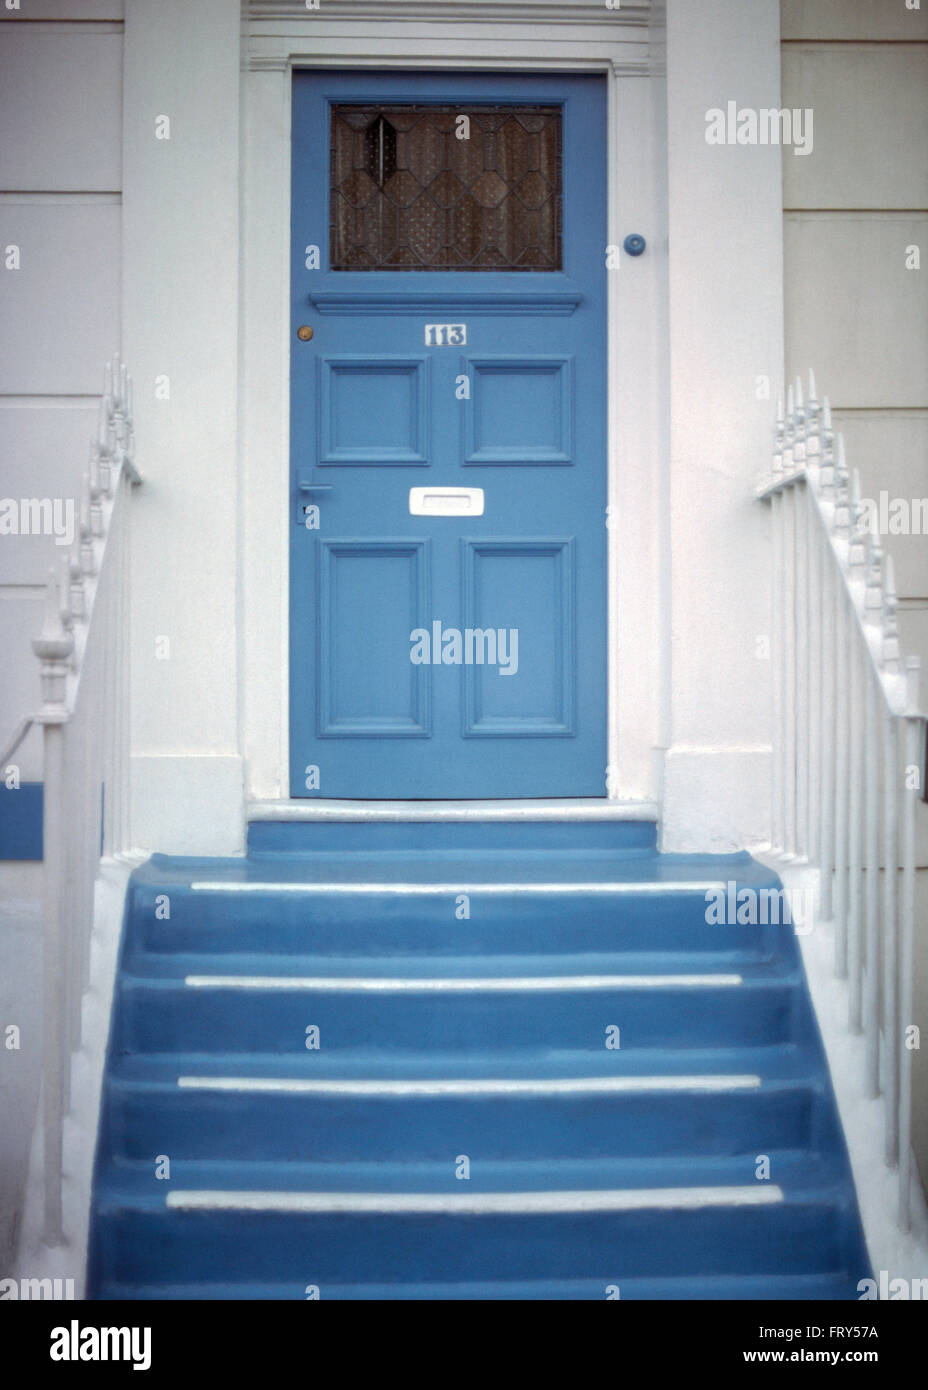 Blue Steps To Success: Blue Painted Steps Up To Blue Front Door Of A White